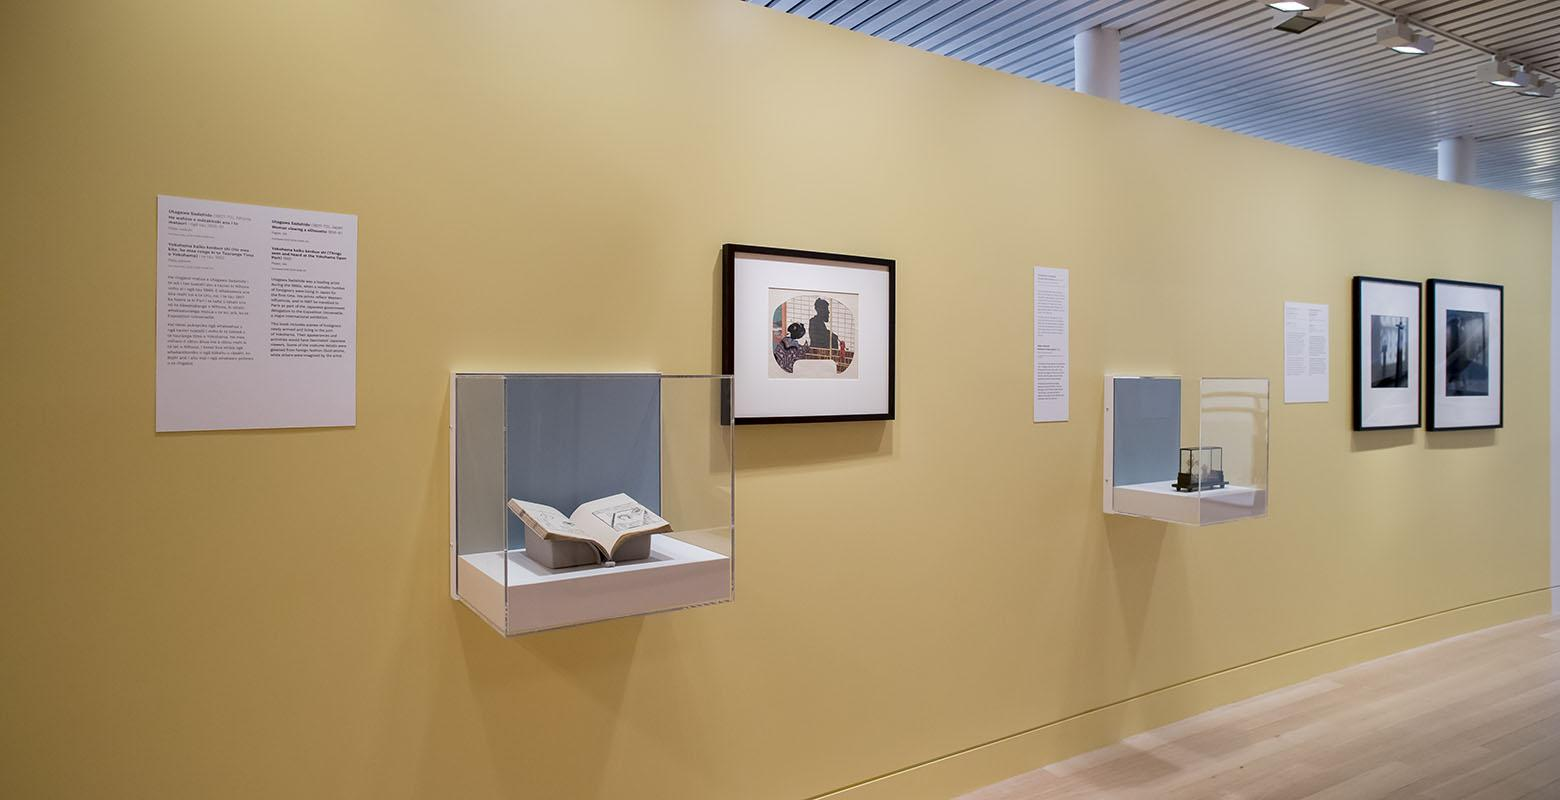 Two photographs are hung on a yellow wall, with a book and a wooden Chinese garden scene housed in display cases